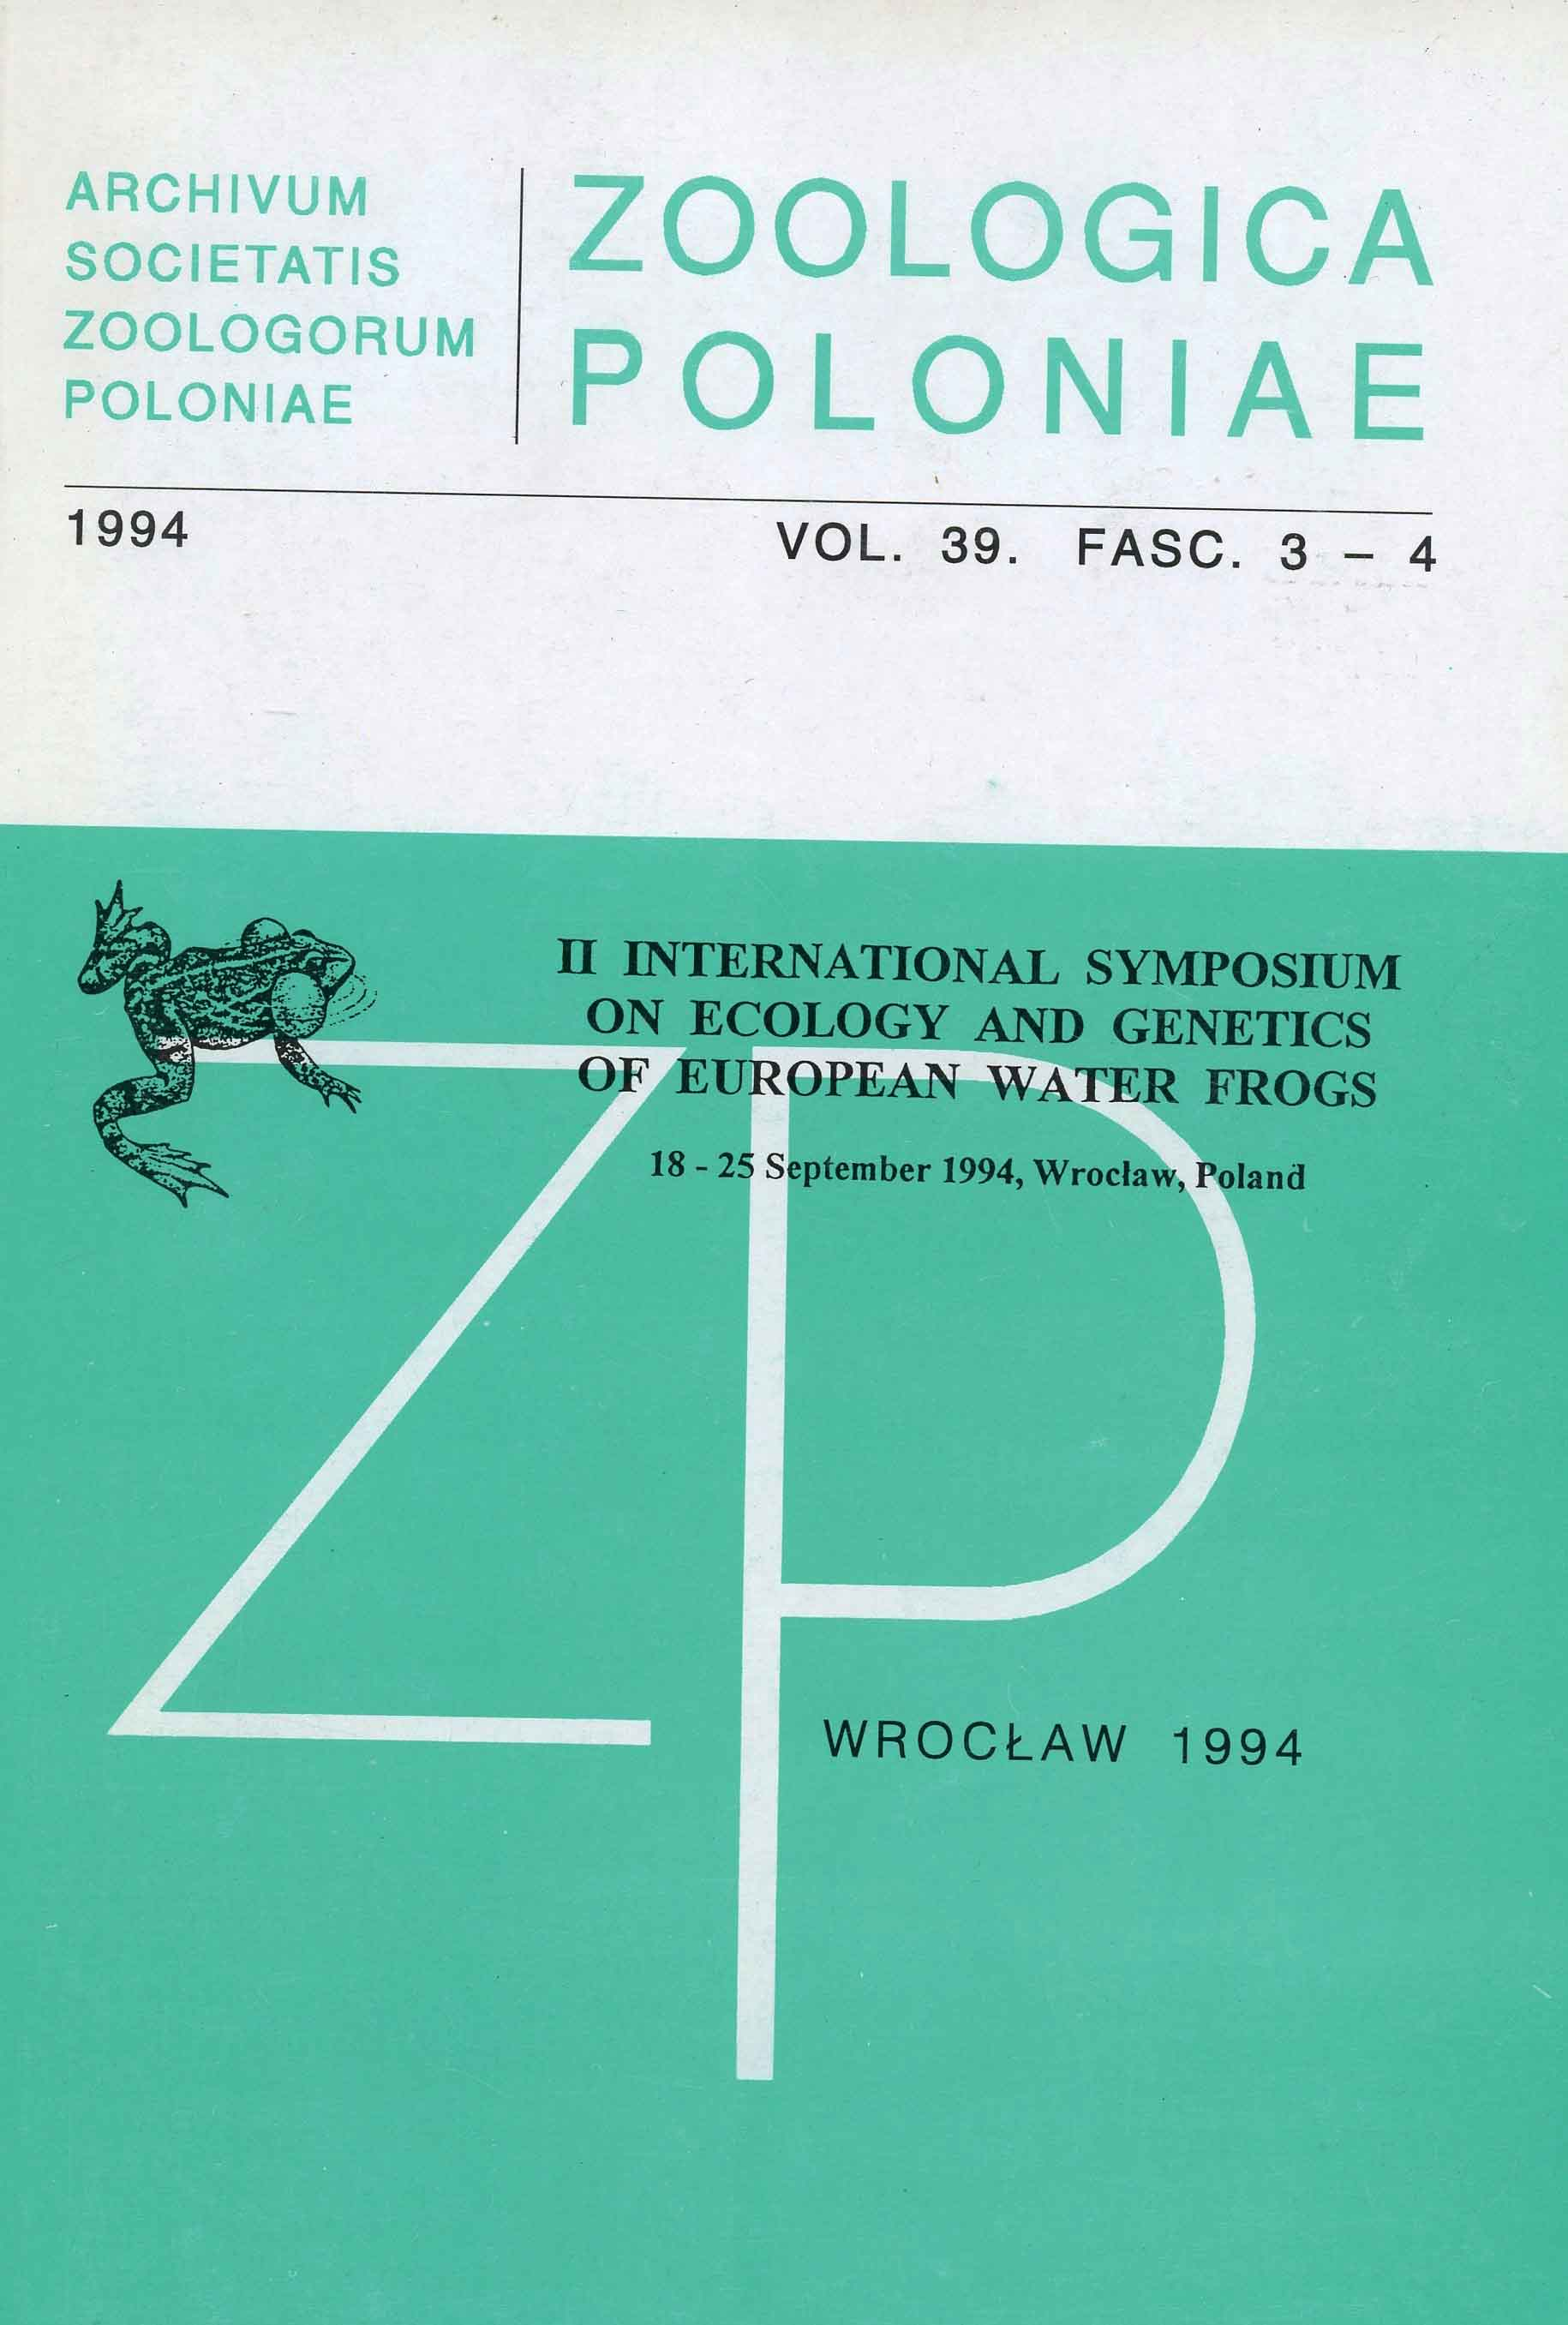 Image for Zoologica Poloniae: II International Symposium on Ecology and Genetics of European Water Frogs (18-25 September 1994, Warsaw, Poland